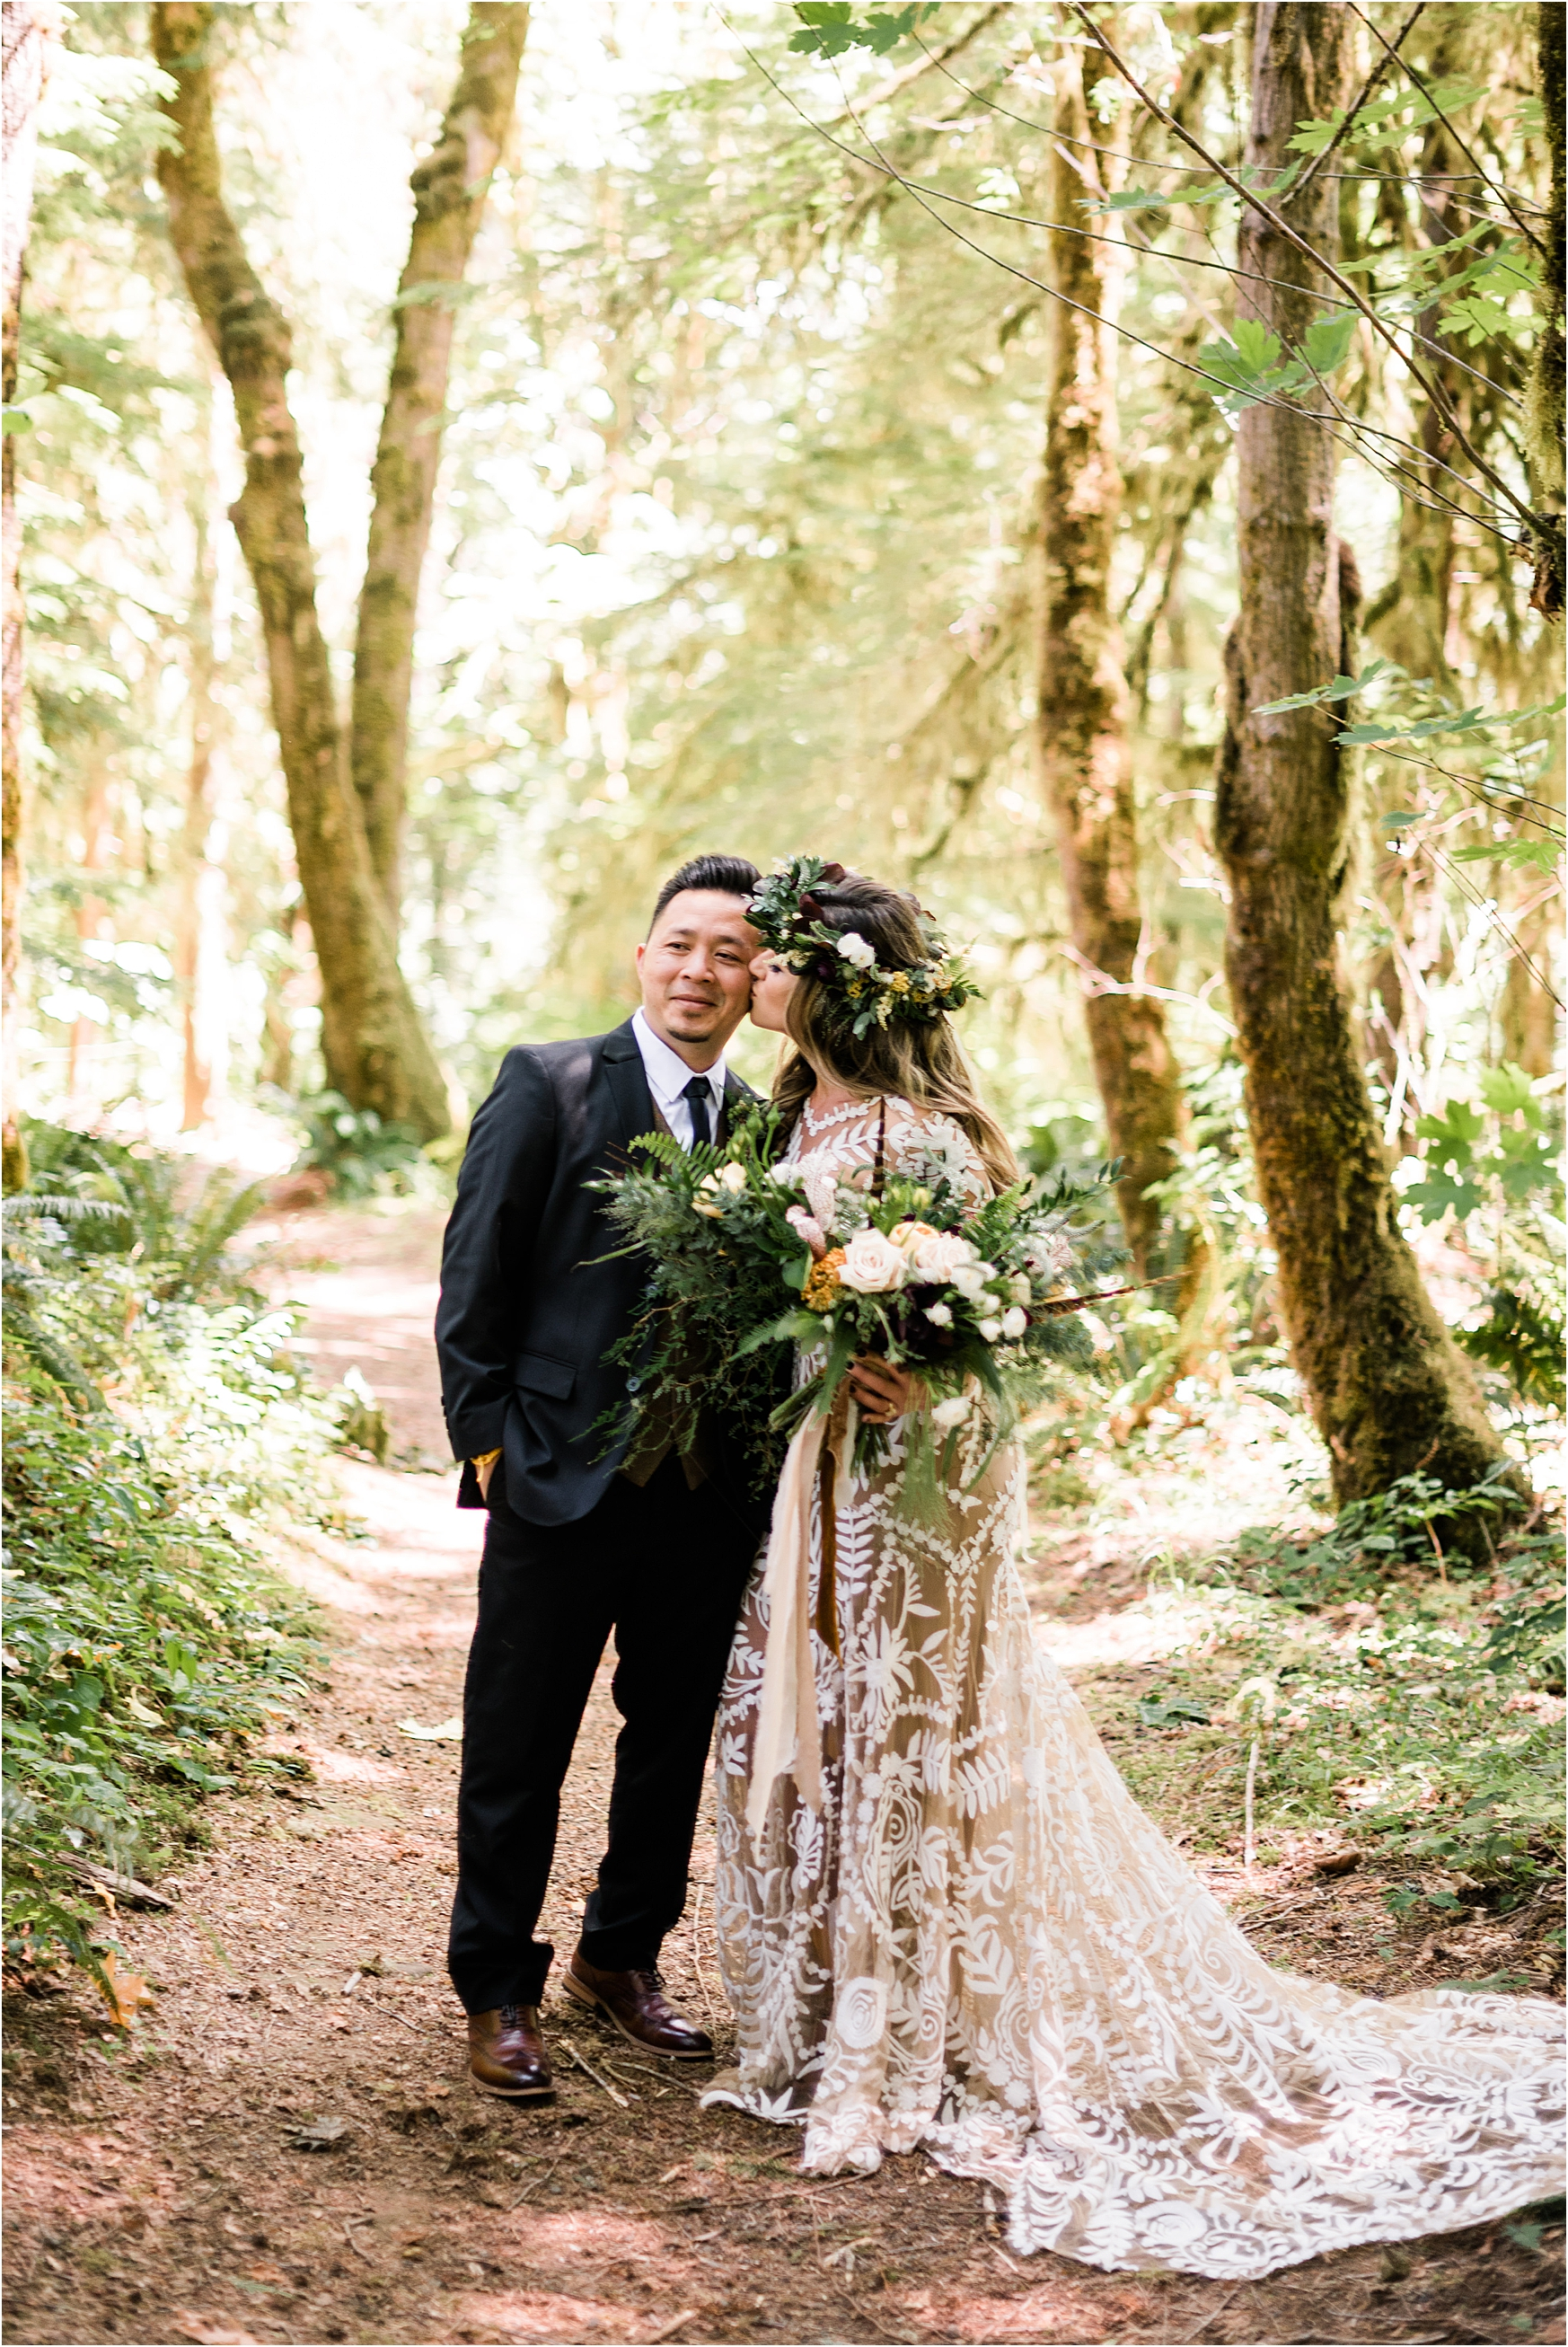 Bride and Groom portraits at Cassy & Viva's bohemian Oregon destination wedding at Camp Lane. Image by Forthright Photo.